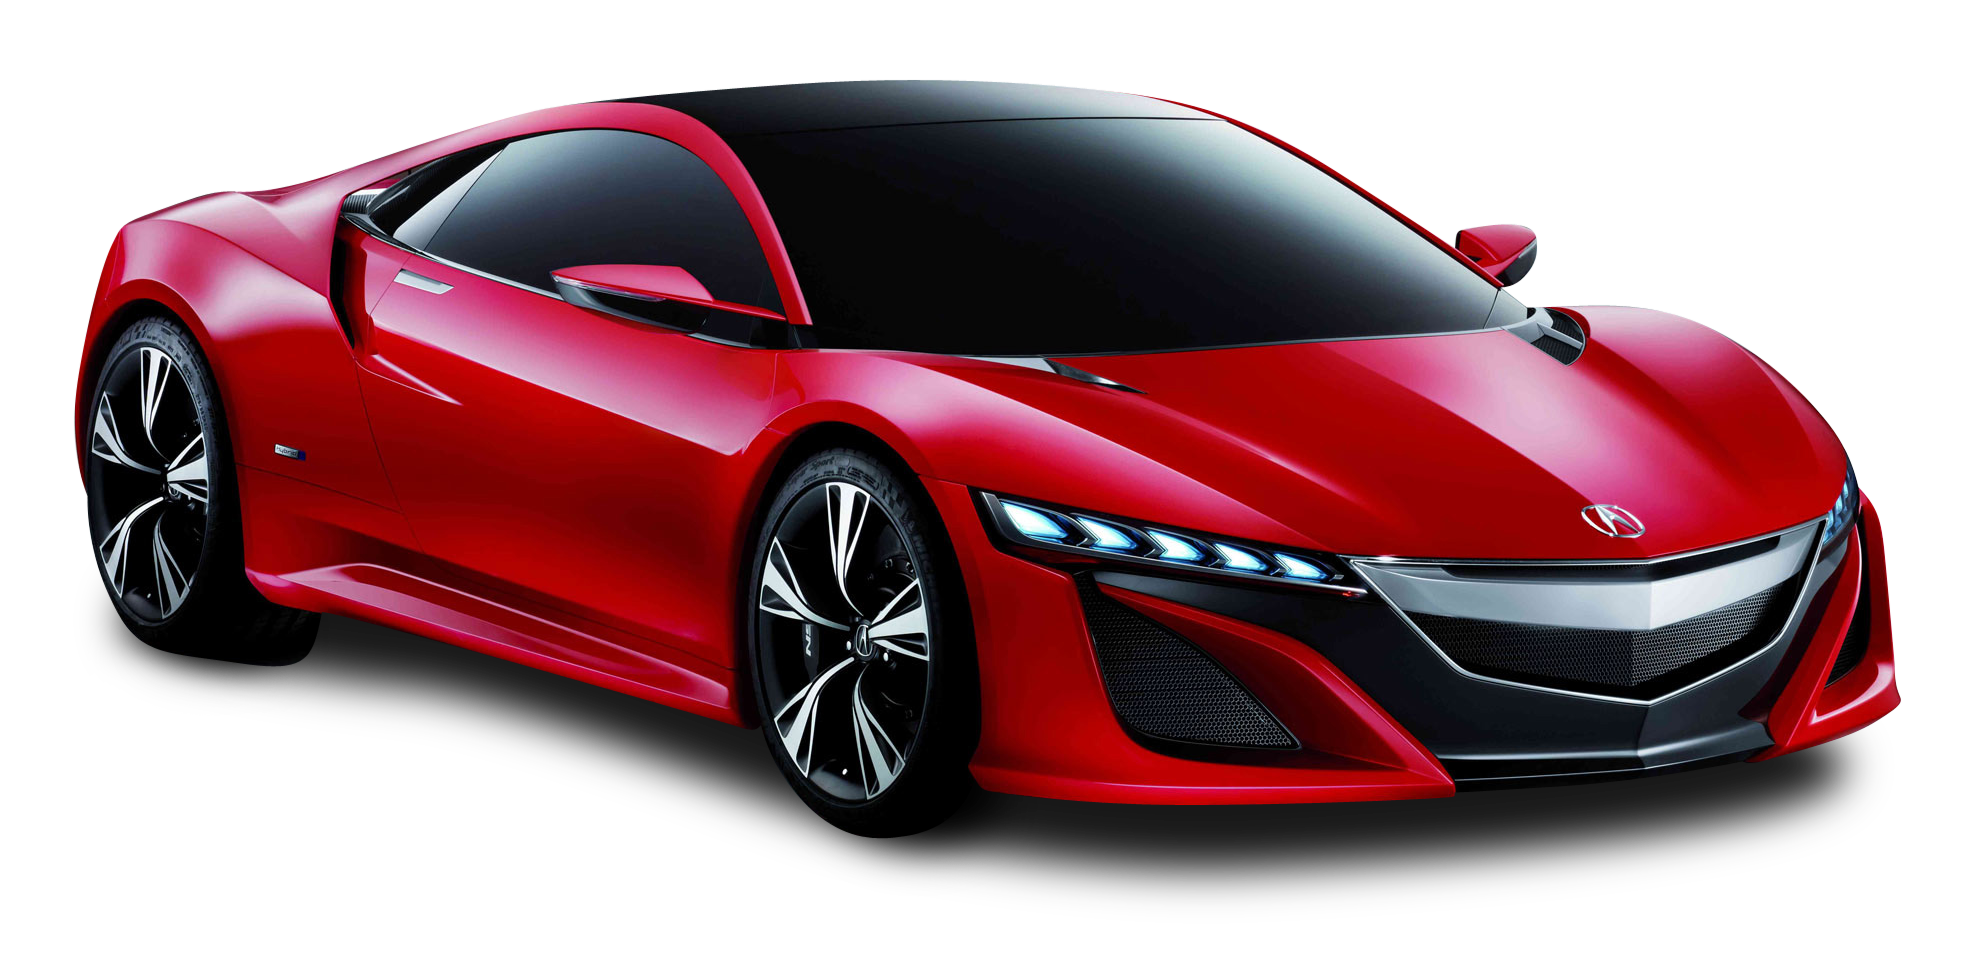 Red Acura NSX Front View Car